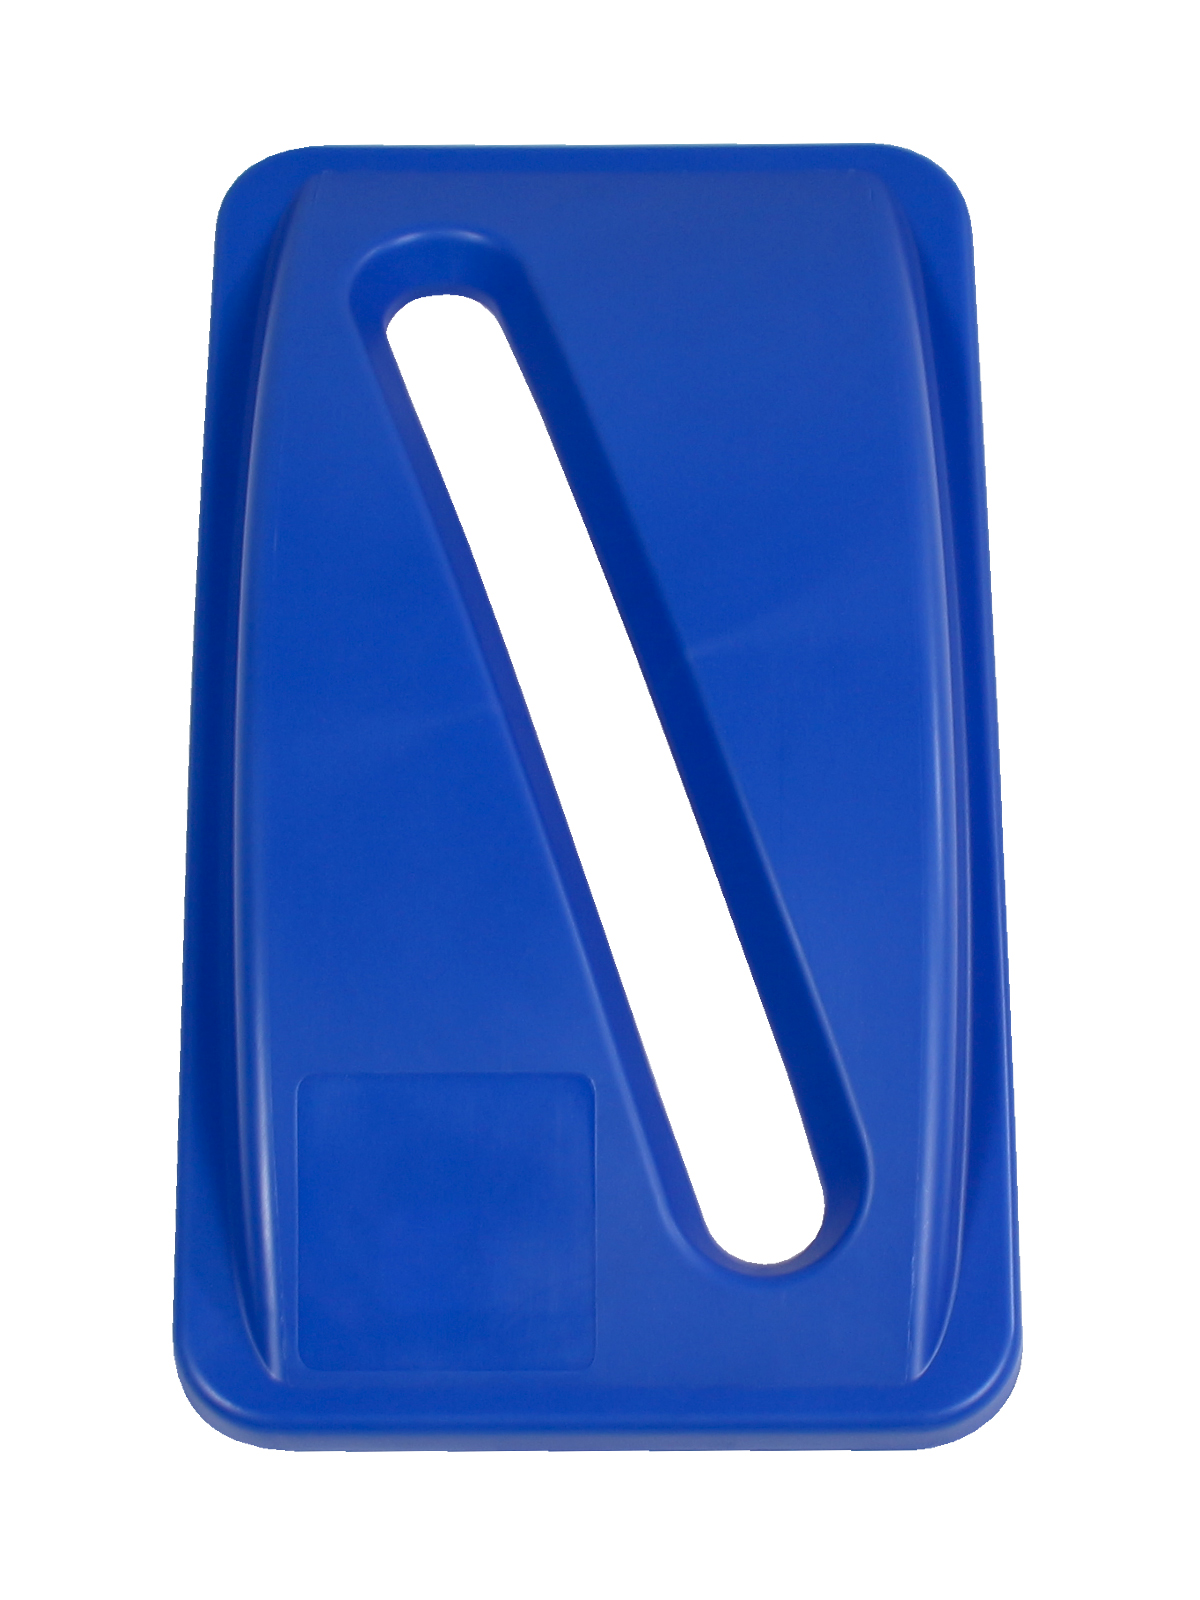 WASTE WATCHER - Lid - Slot - Royal Blue